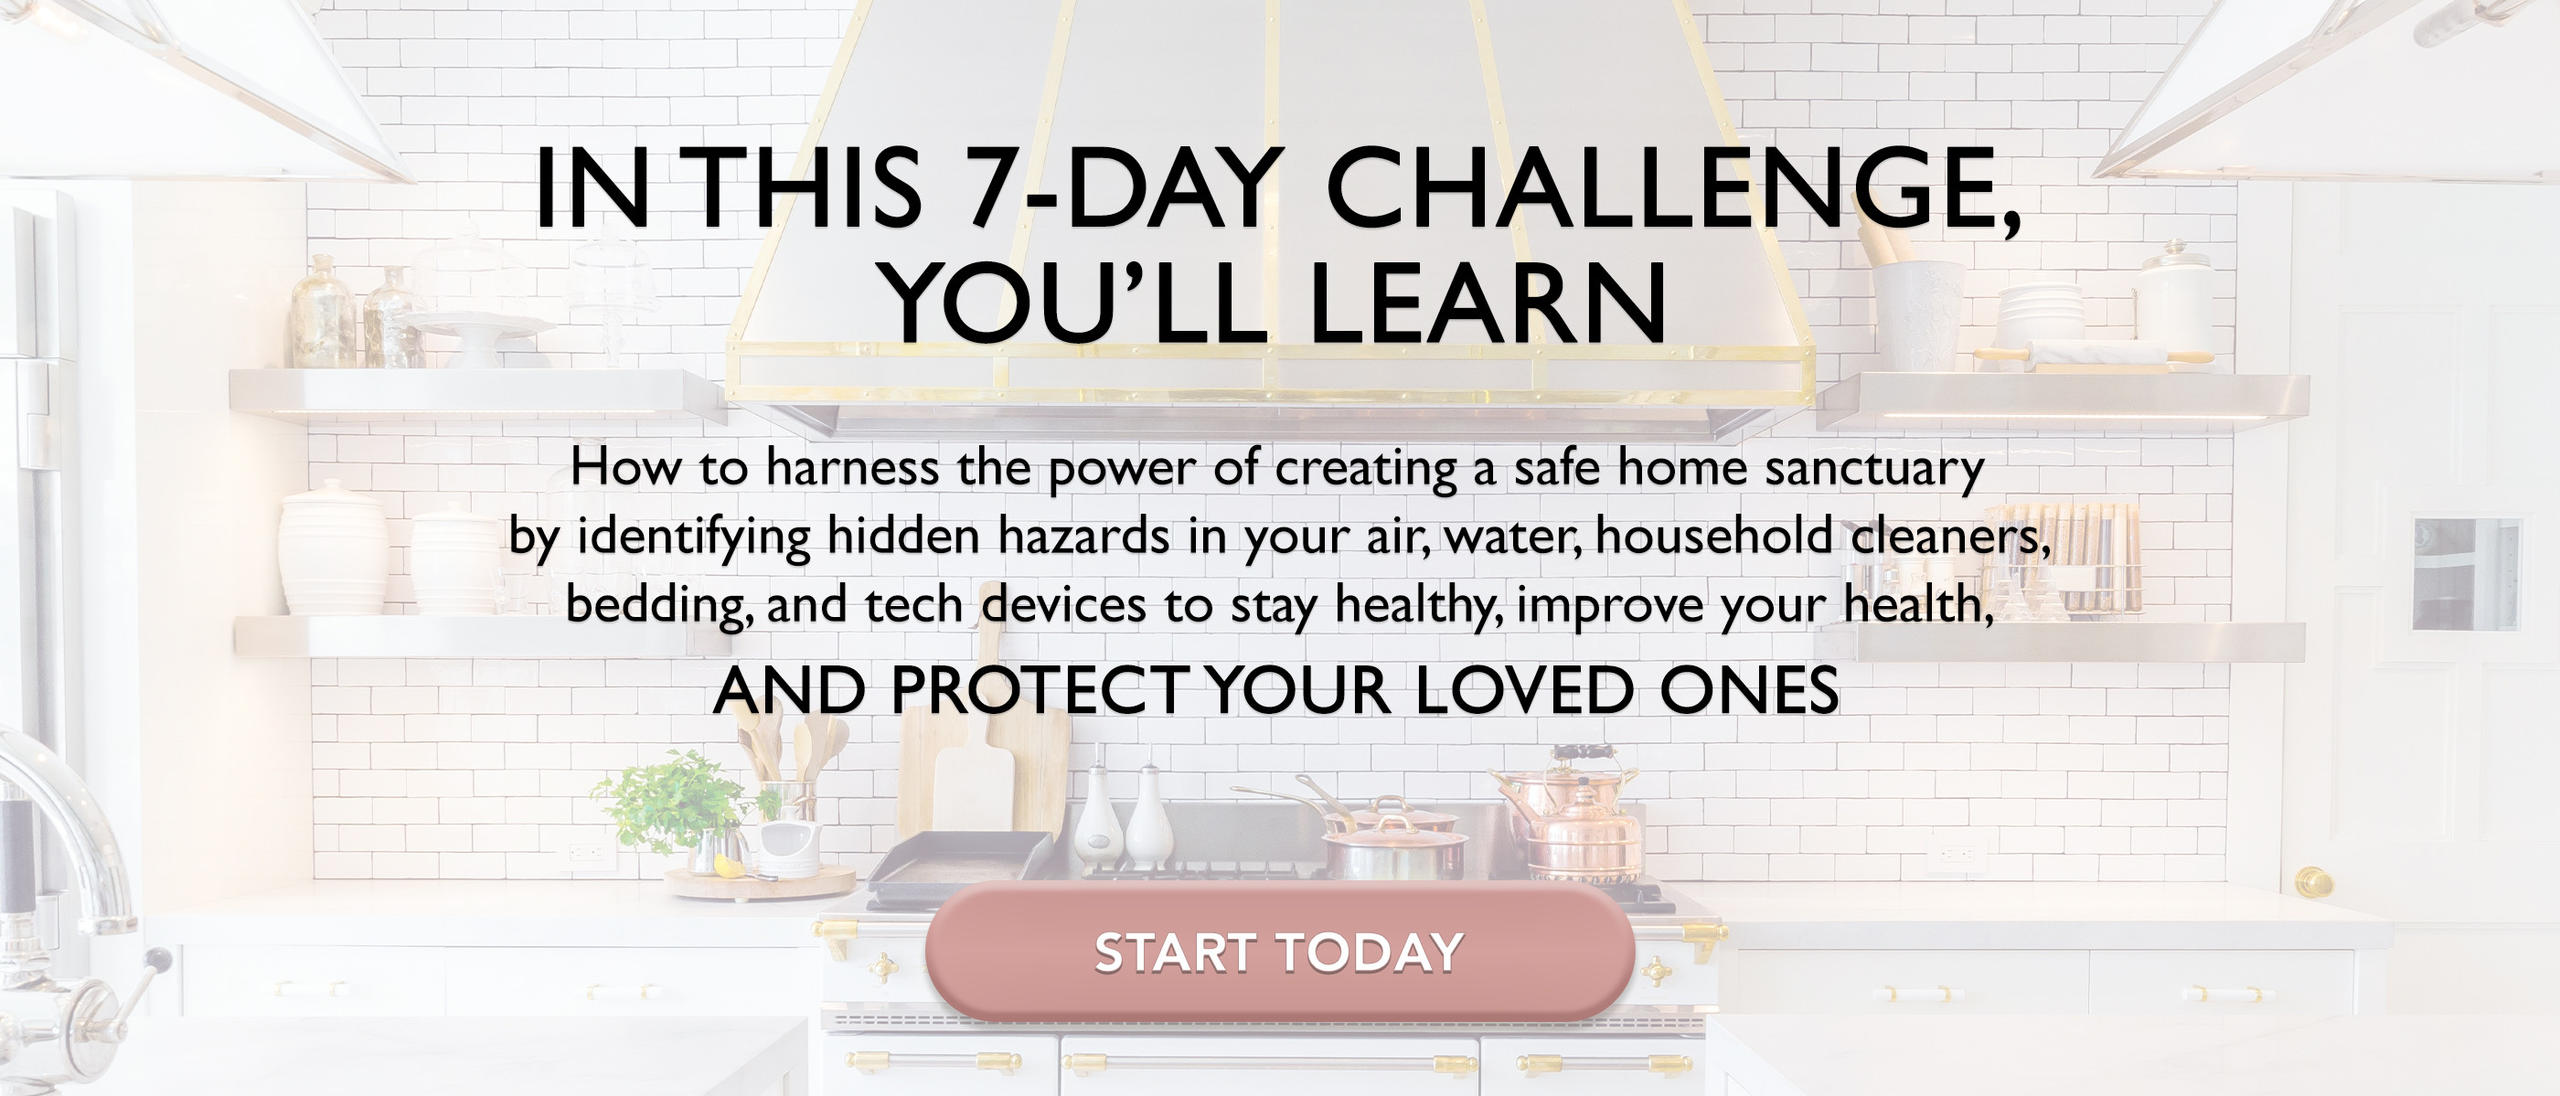 How to harness the power of creating a safe home sanctuary through the 7-Day Challenge